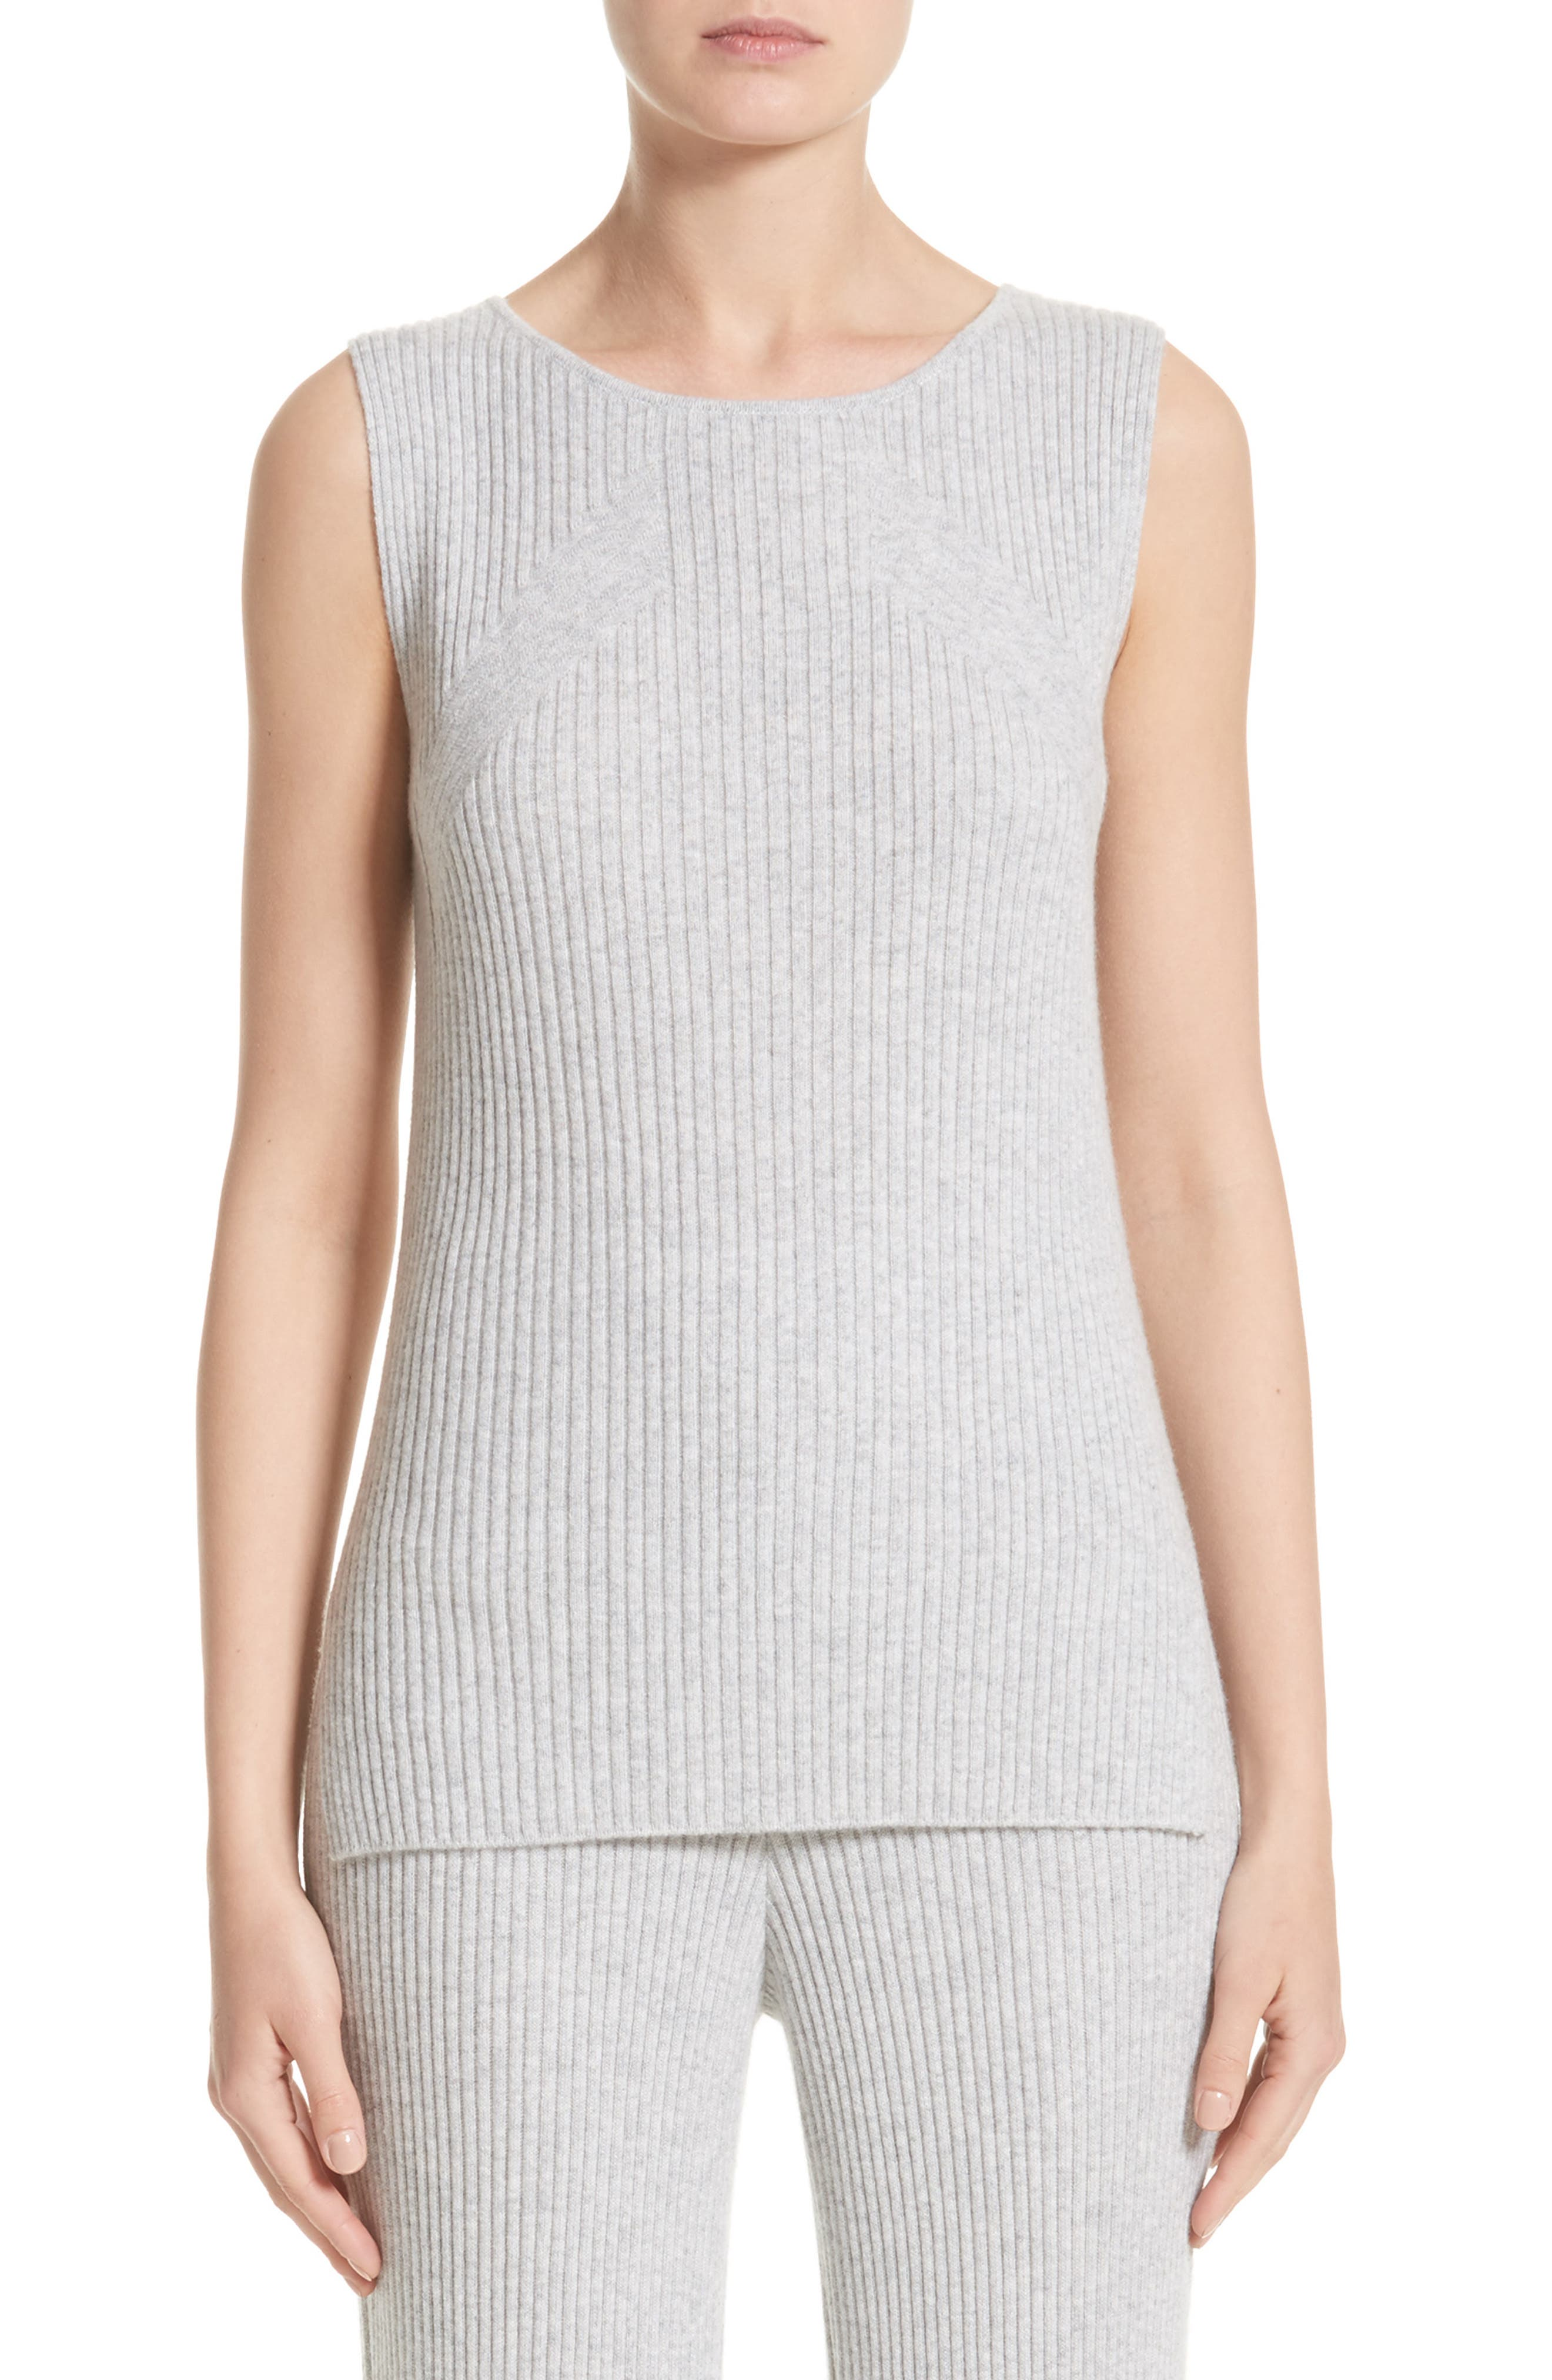 Alternate Image 1 Selected - St. John Collection Knit Cashmere Shell